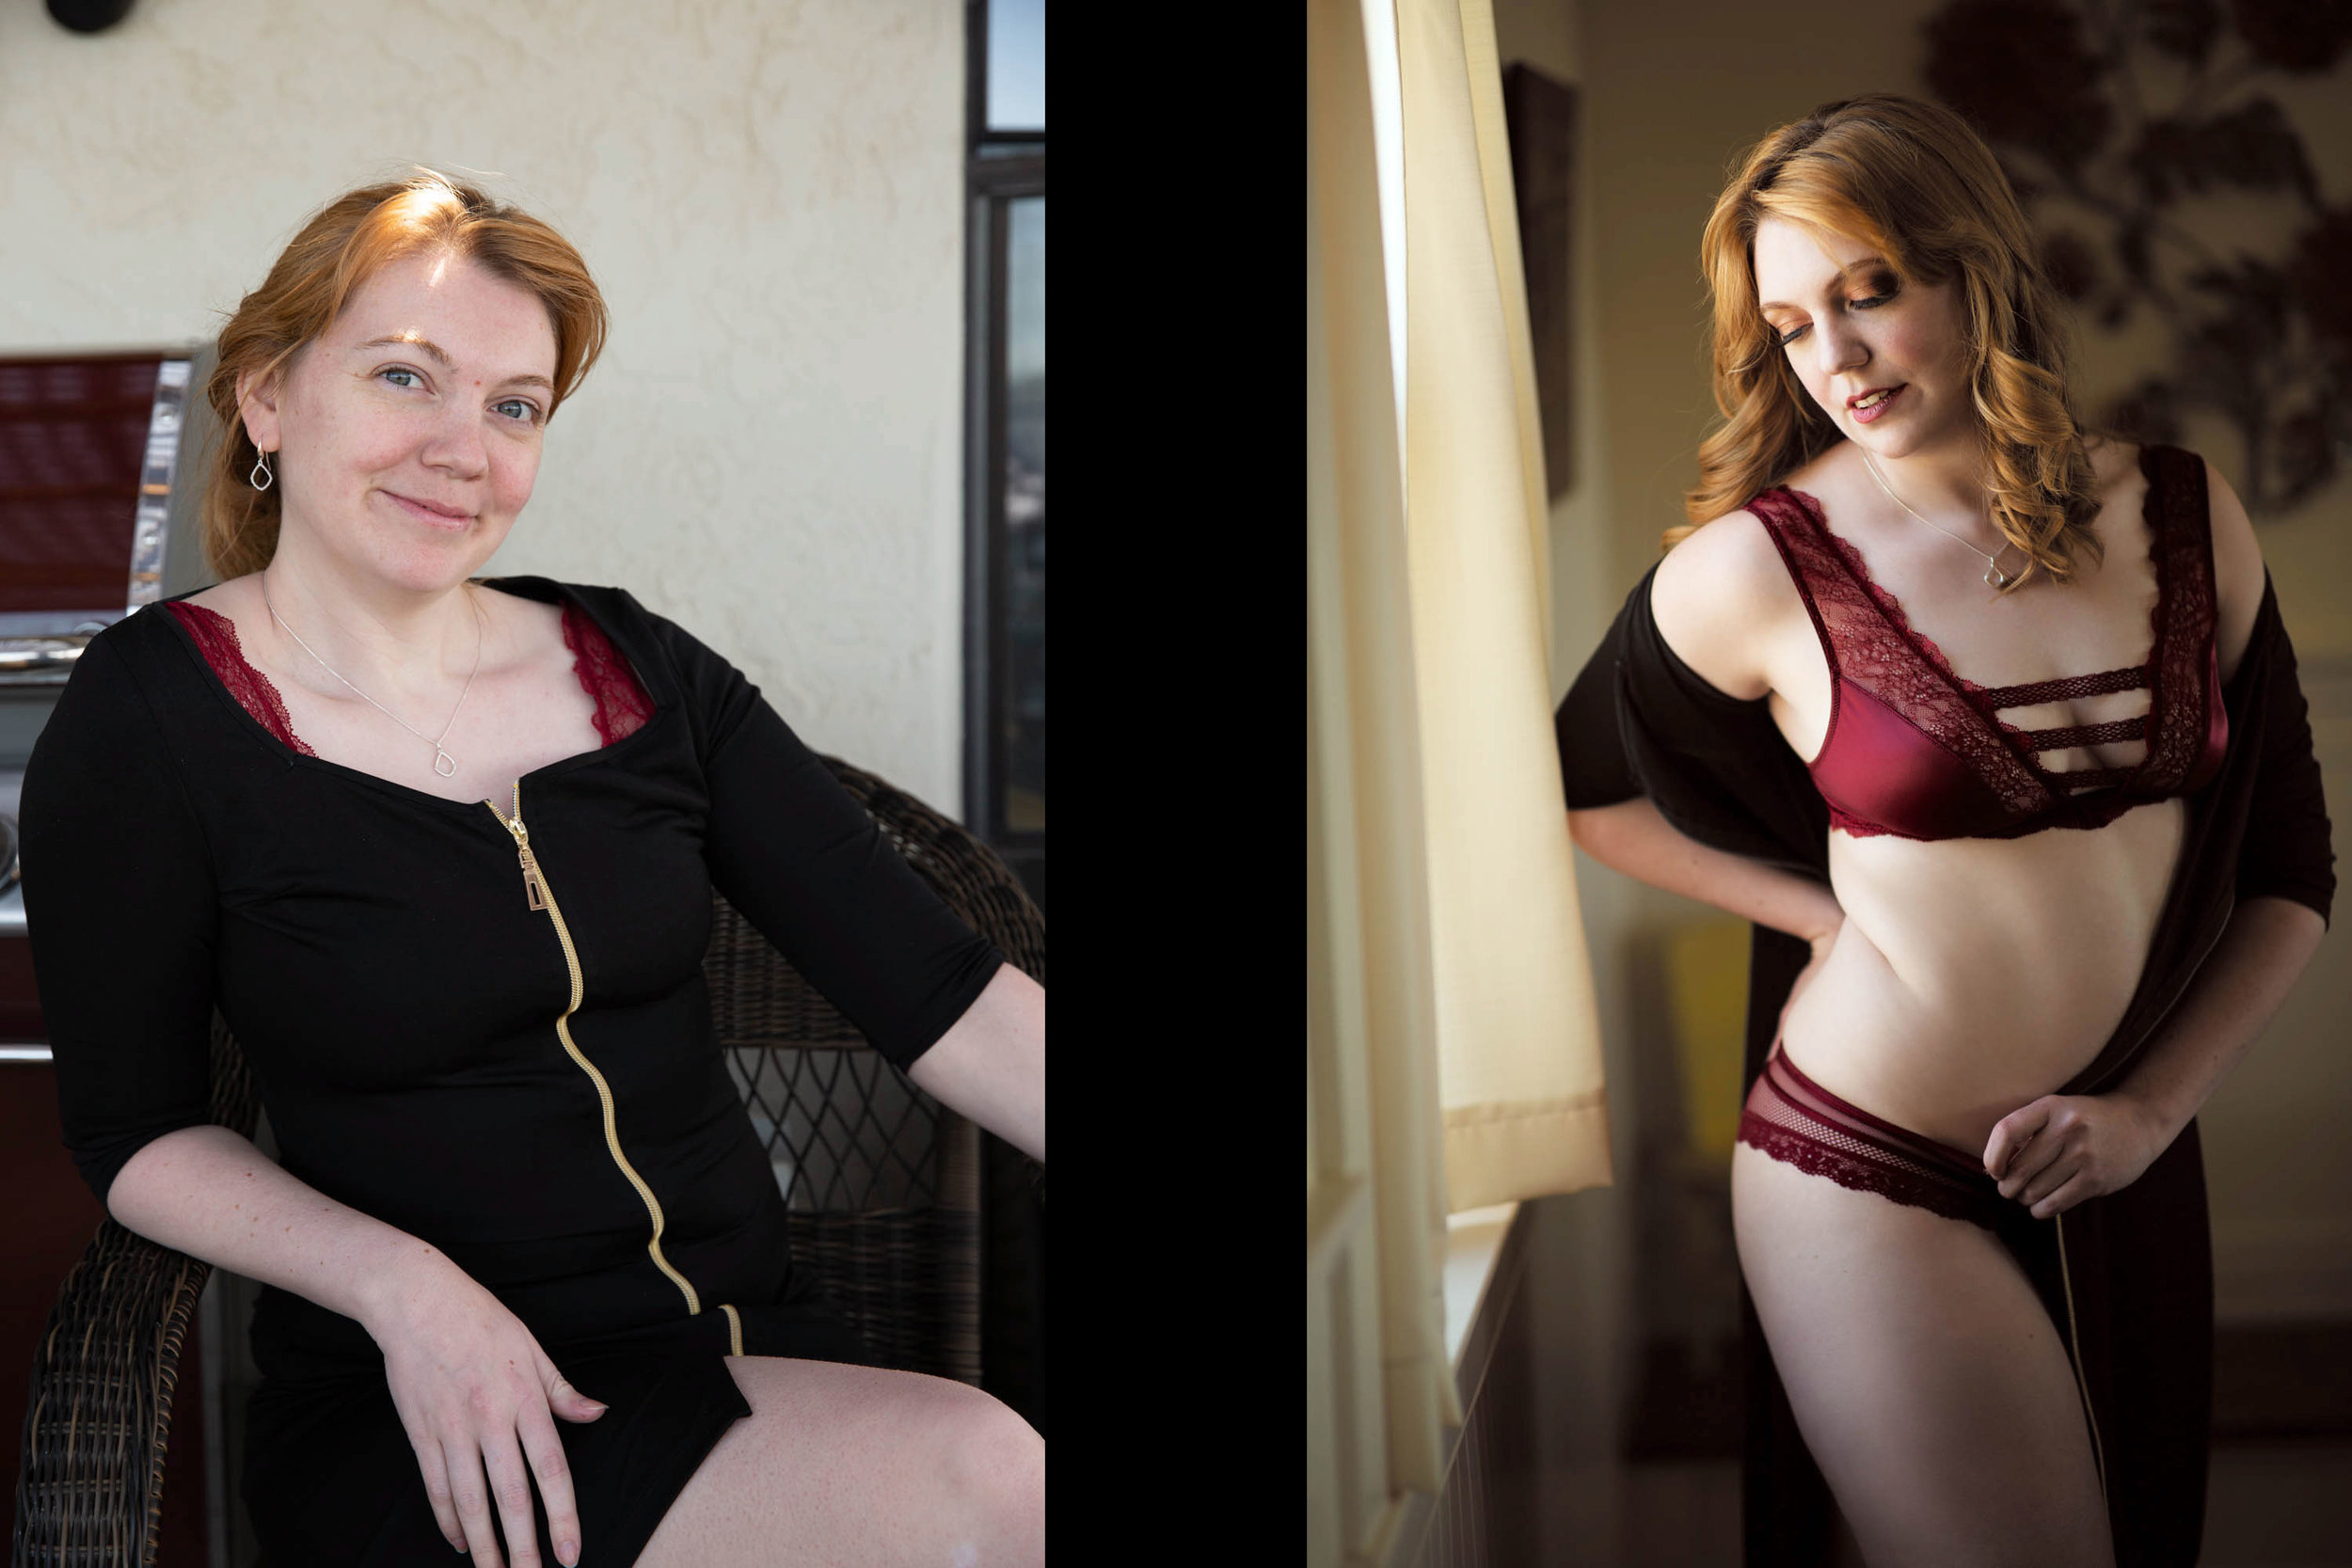 Before & after from Siobhan's boudoir photo shoot.